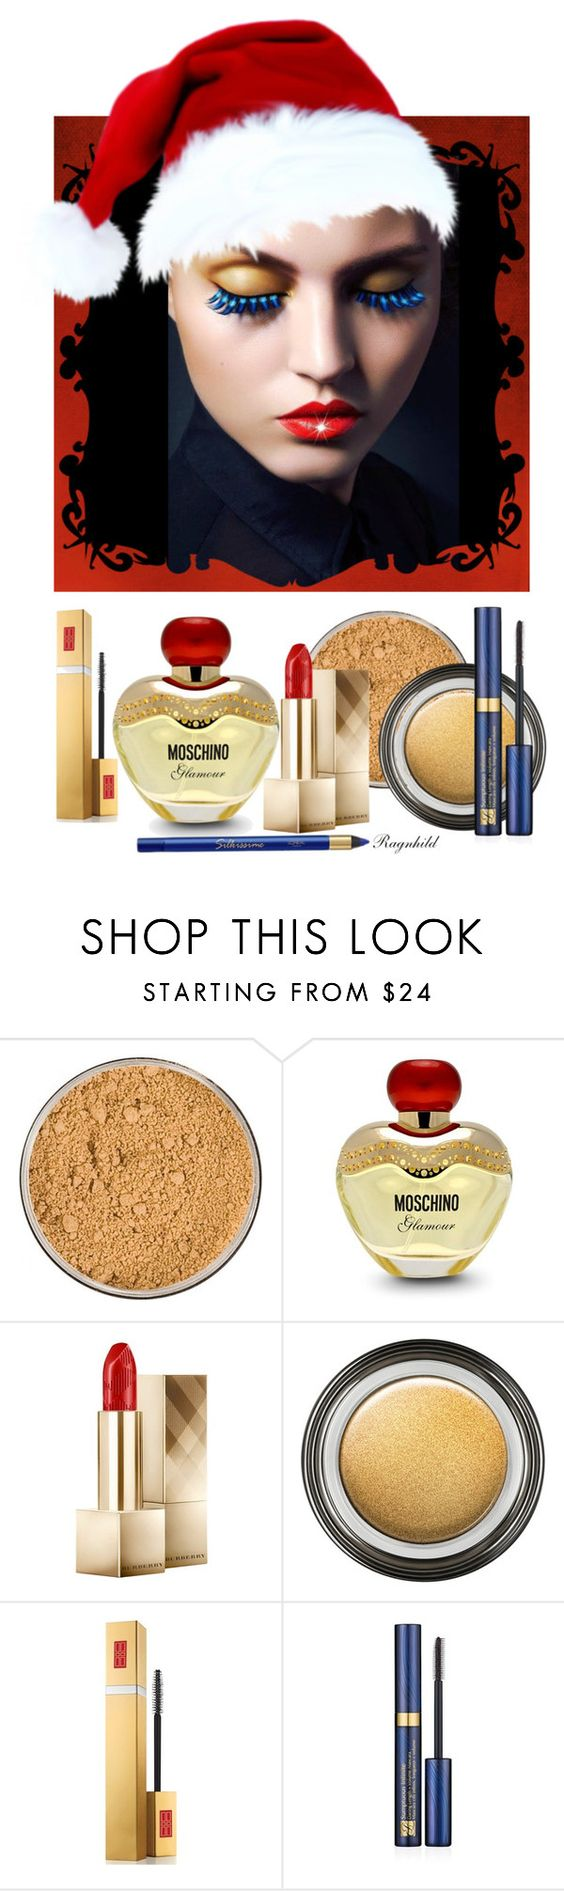 """Beauty for Christmas Eve / Julaften"" by ragnh-mjos ❤ liked on Polyvore featuring beauty, Jane Iredale, Moschino, Burberry, Giorgio Armani, Elizabeth Arden, Estée Lauder, L'Oréal Paris, makeup and beautyset"